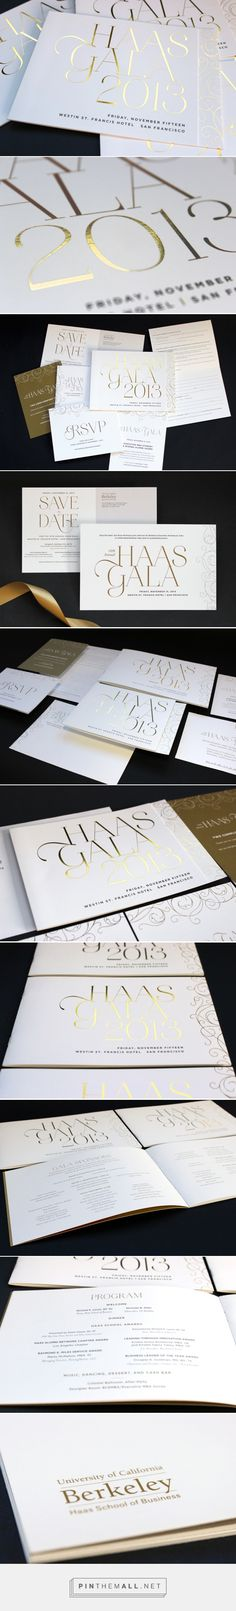 Haas Gala invitation suite. Gold foil, metallic ink, luxe cardstock. #foilstamp #invitation #gala #non-profit || Jody Worthington